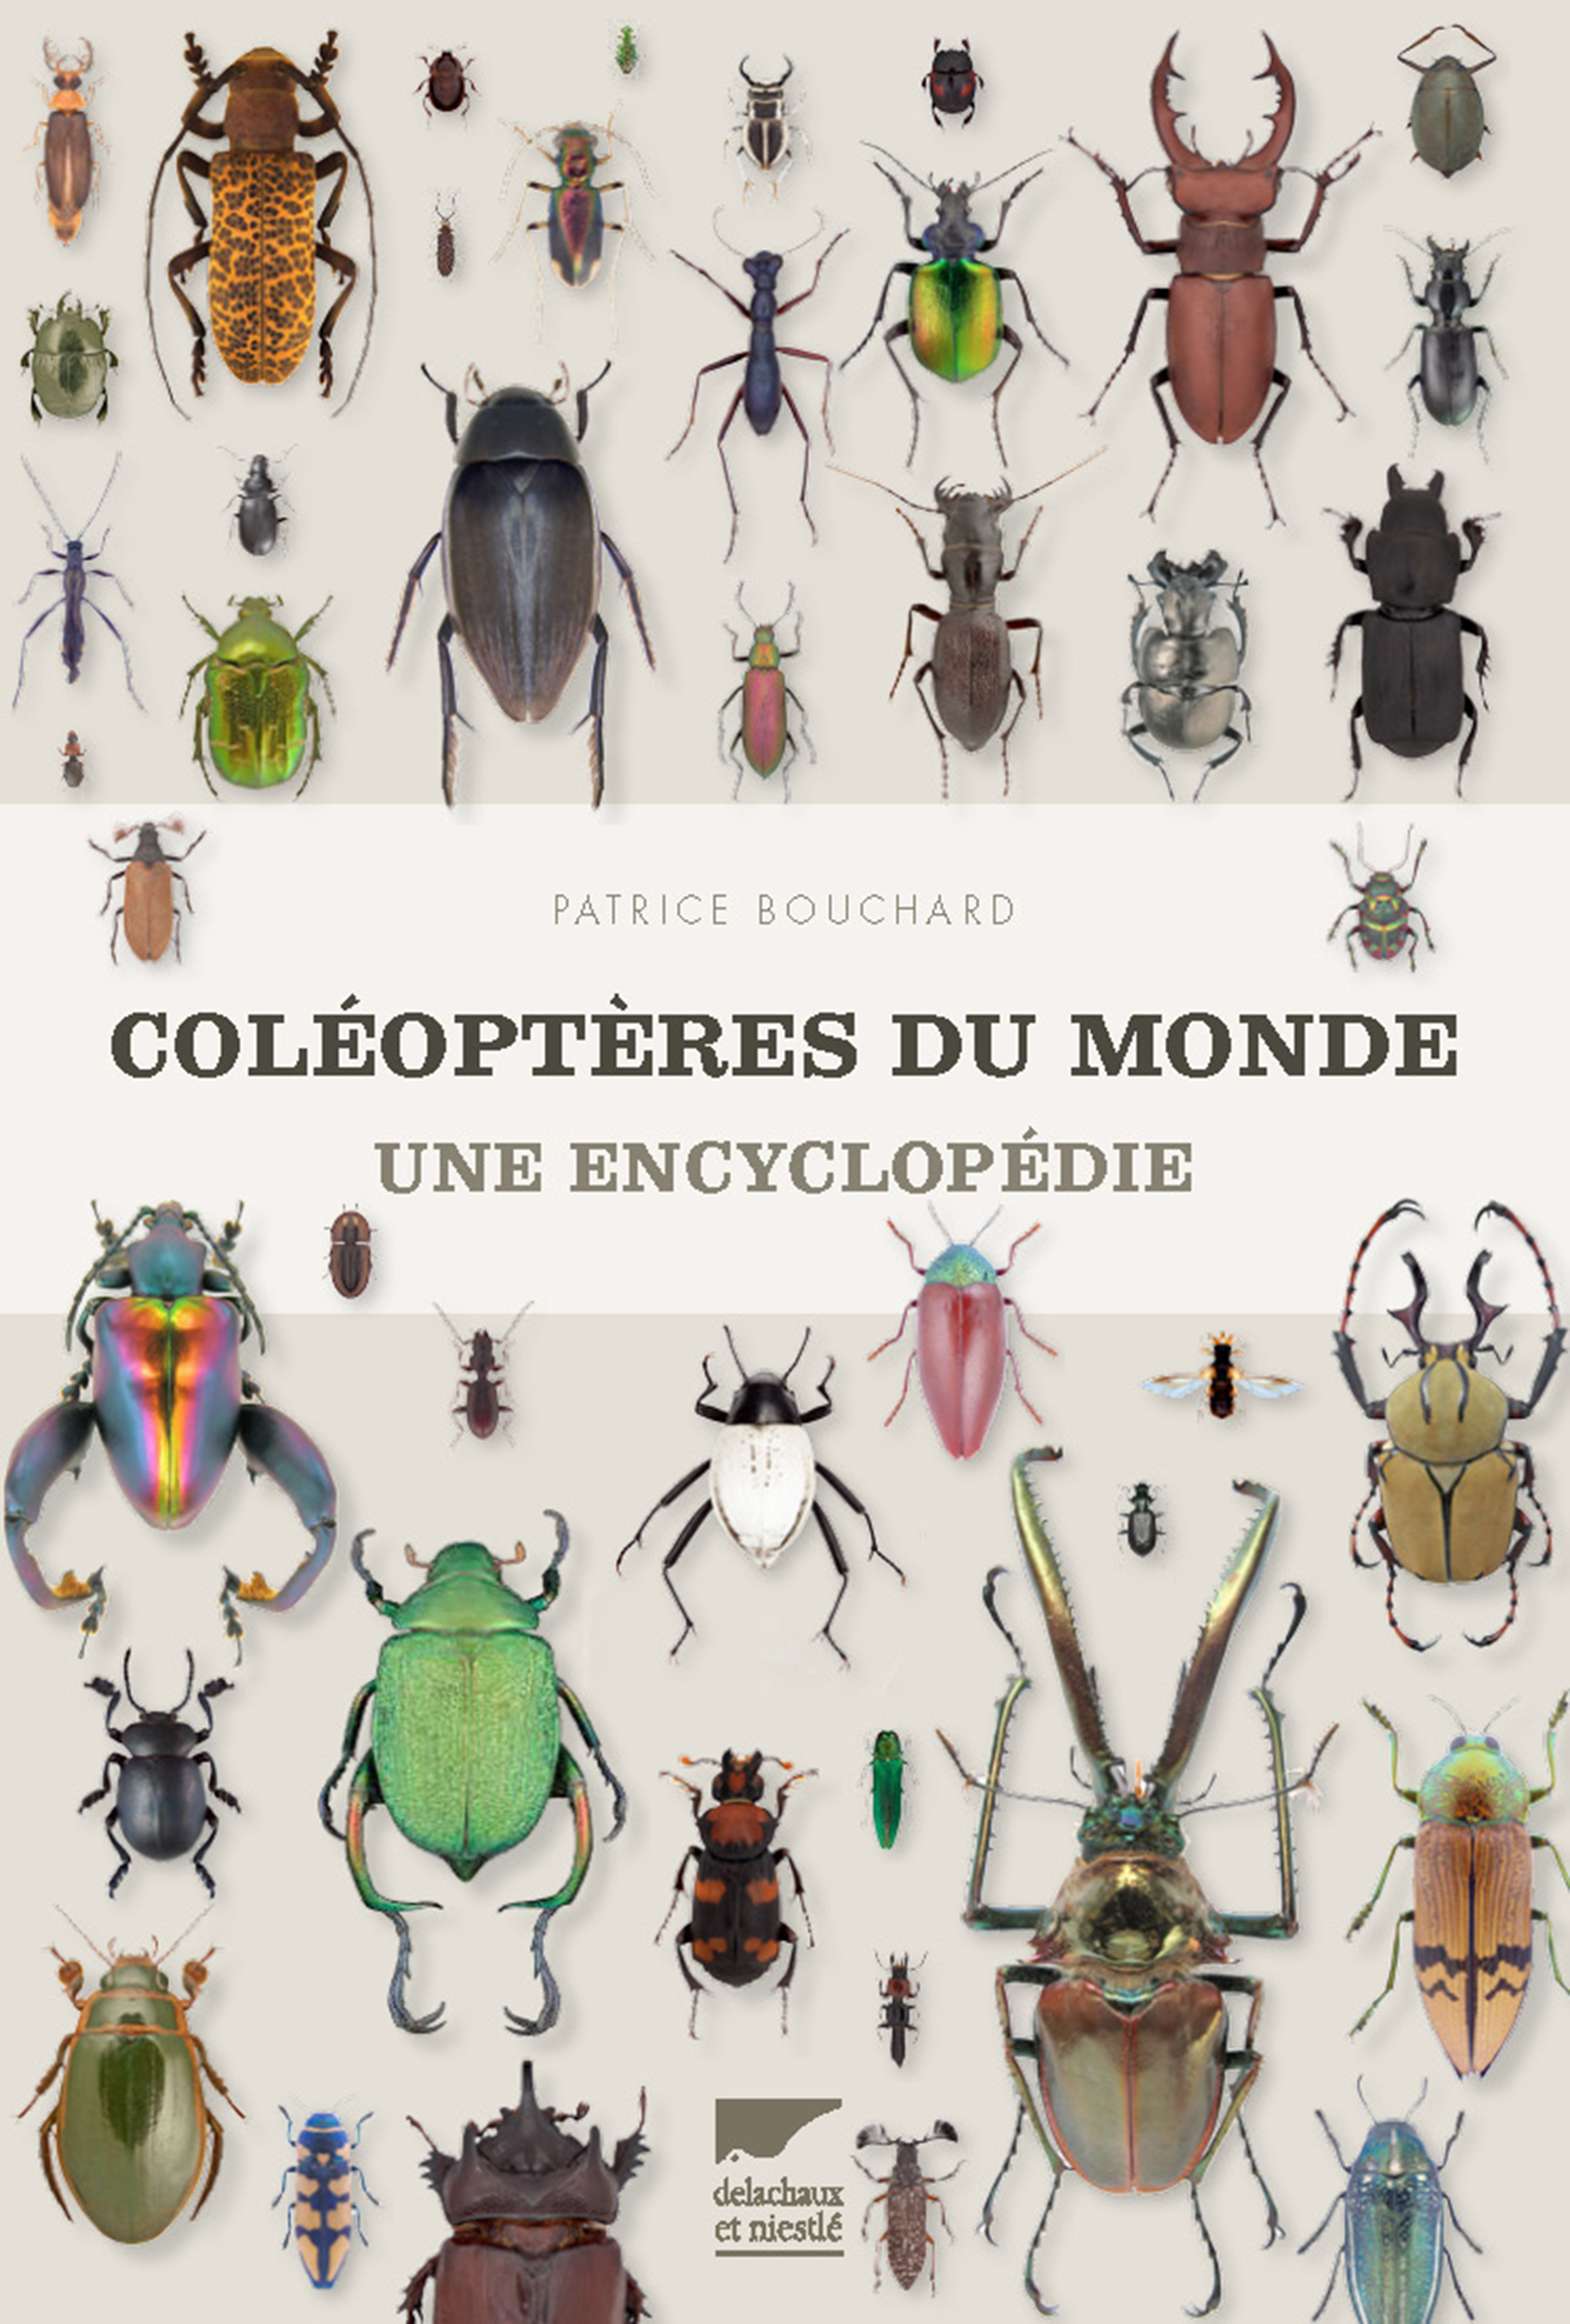 Beetles of the world: an encyclopedia – Interview of Patrice Bouchard